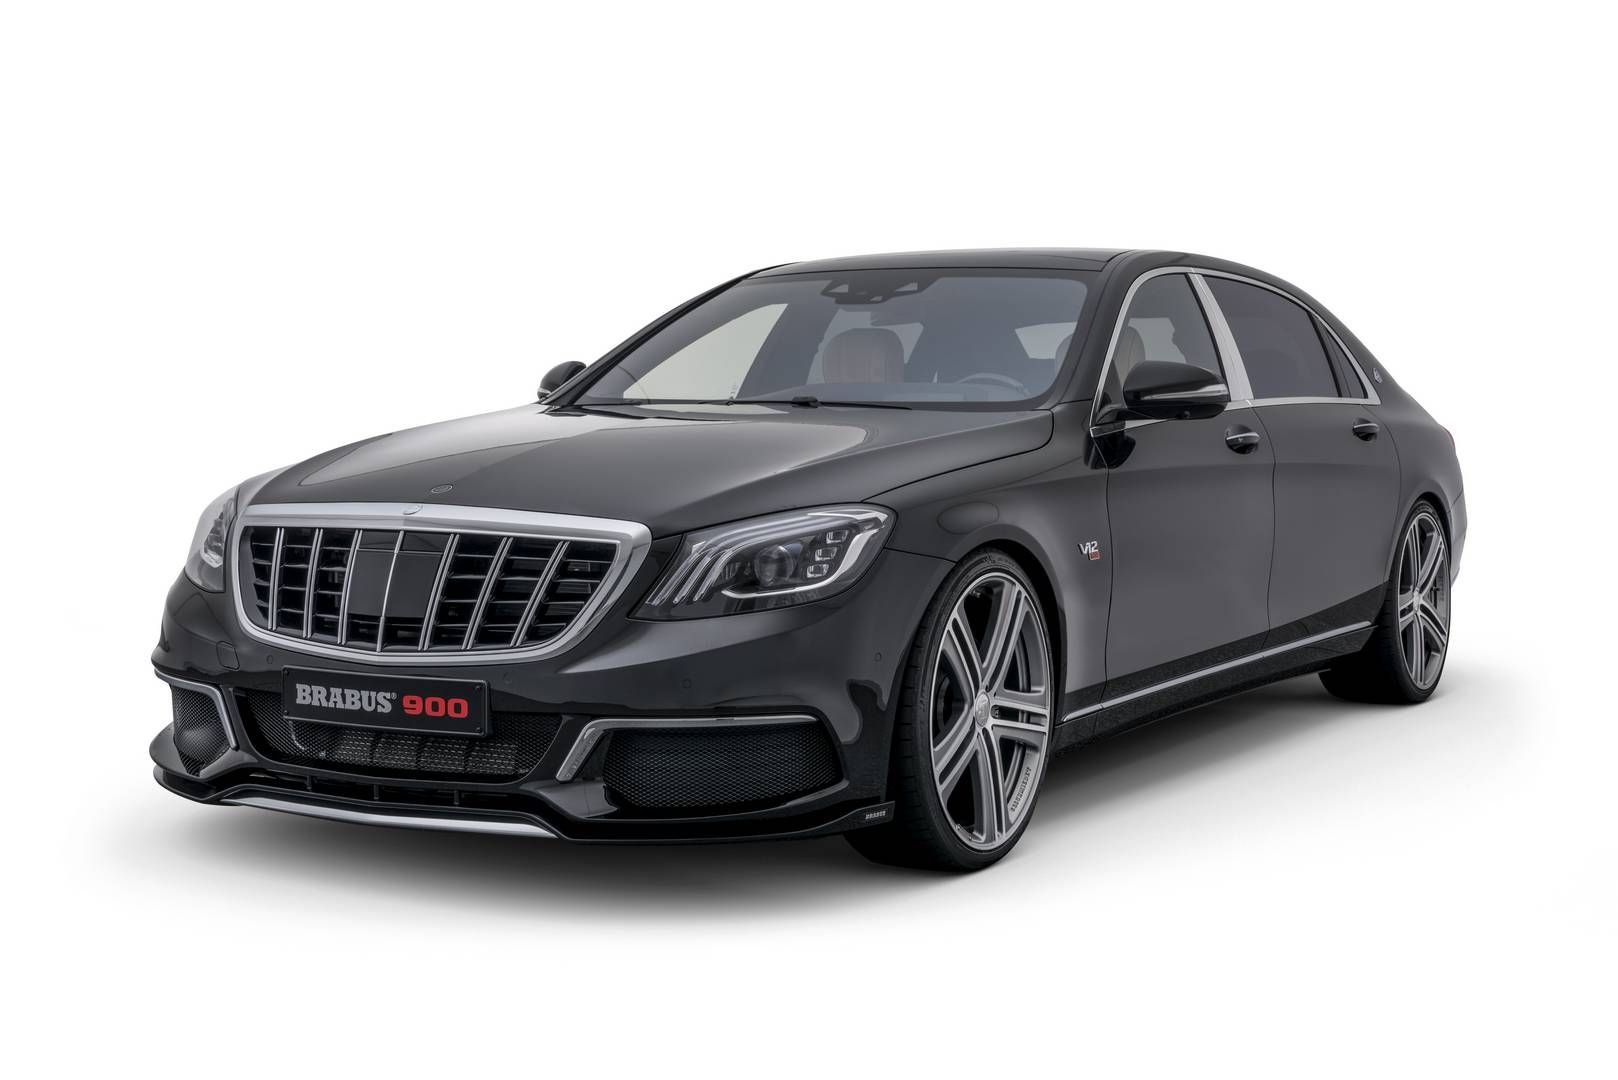 Official Brabus Rocket 900 Based On Mercedes Maybach S650 With